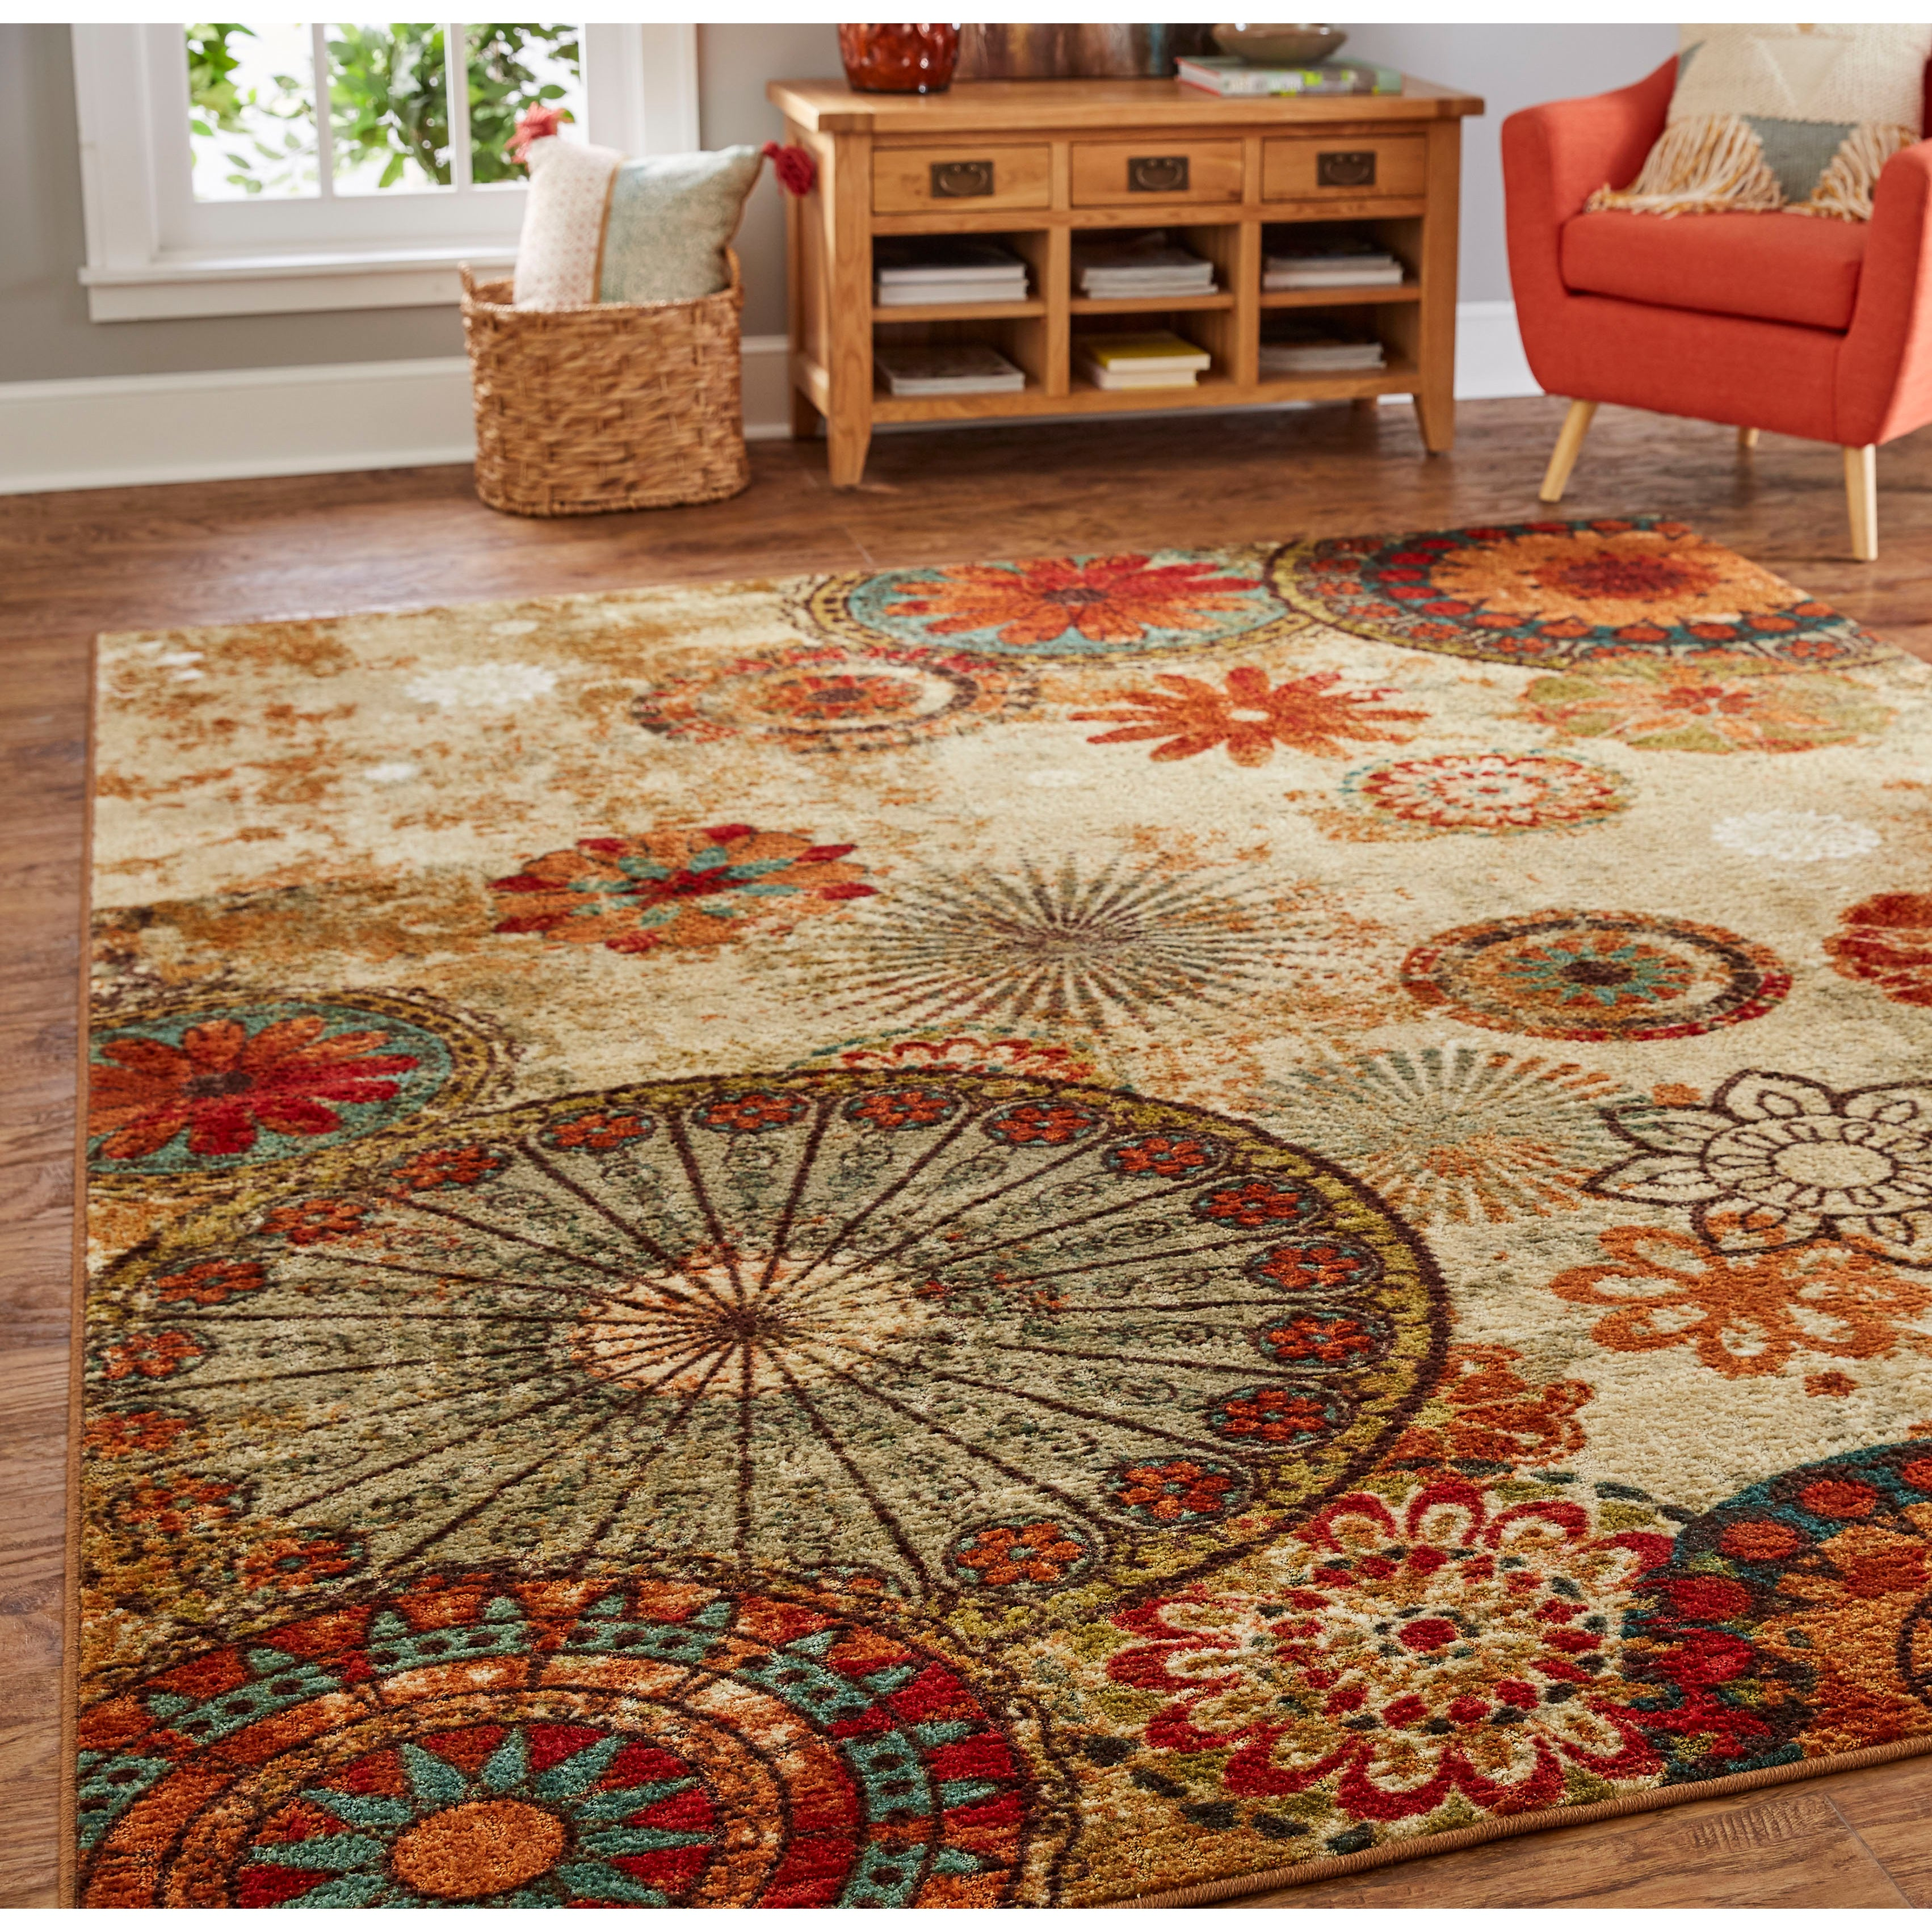 Mohawk Home Traditional Jewel Rug: Mohawk Home Strata Caravan Medallion Multicolor Area Rug